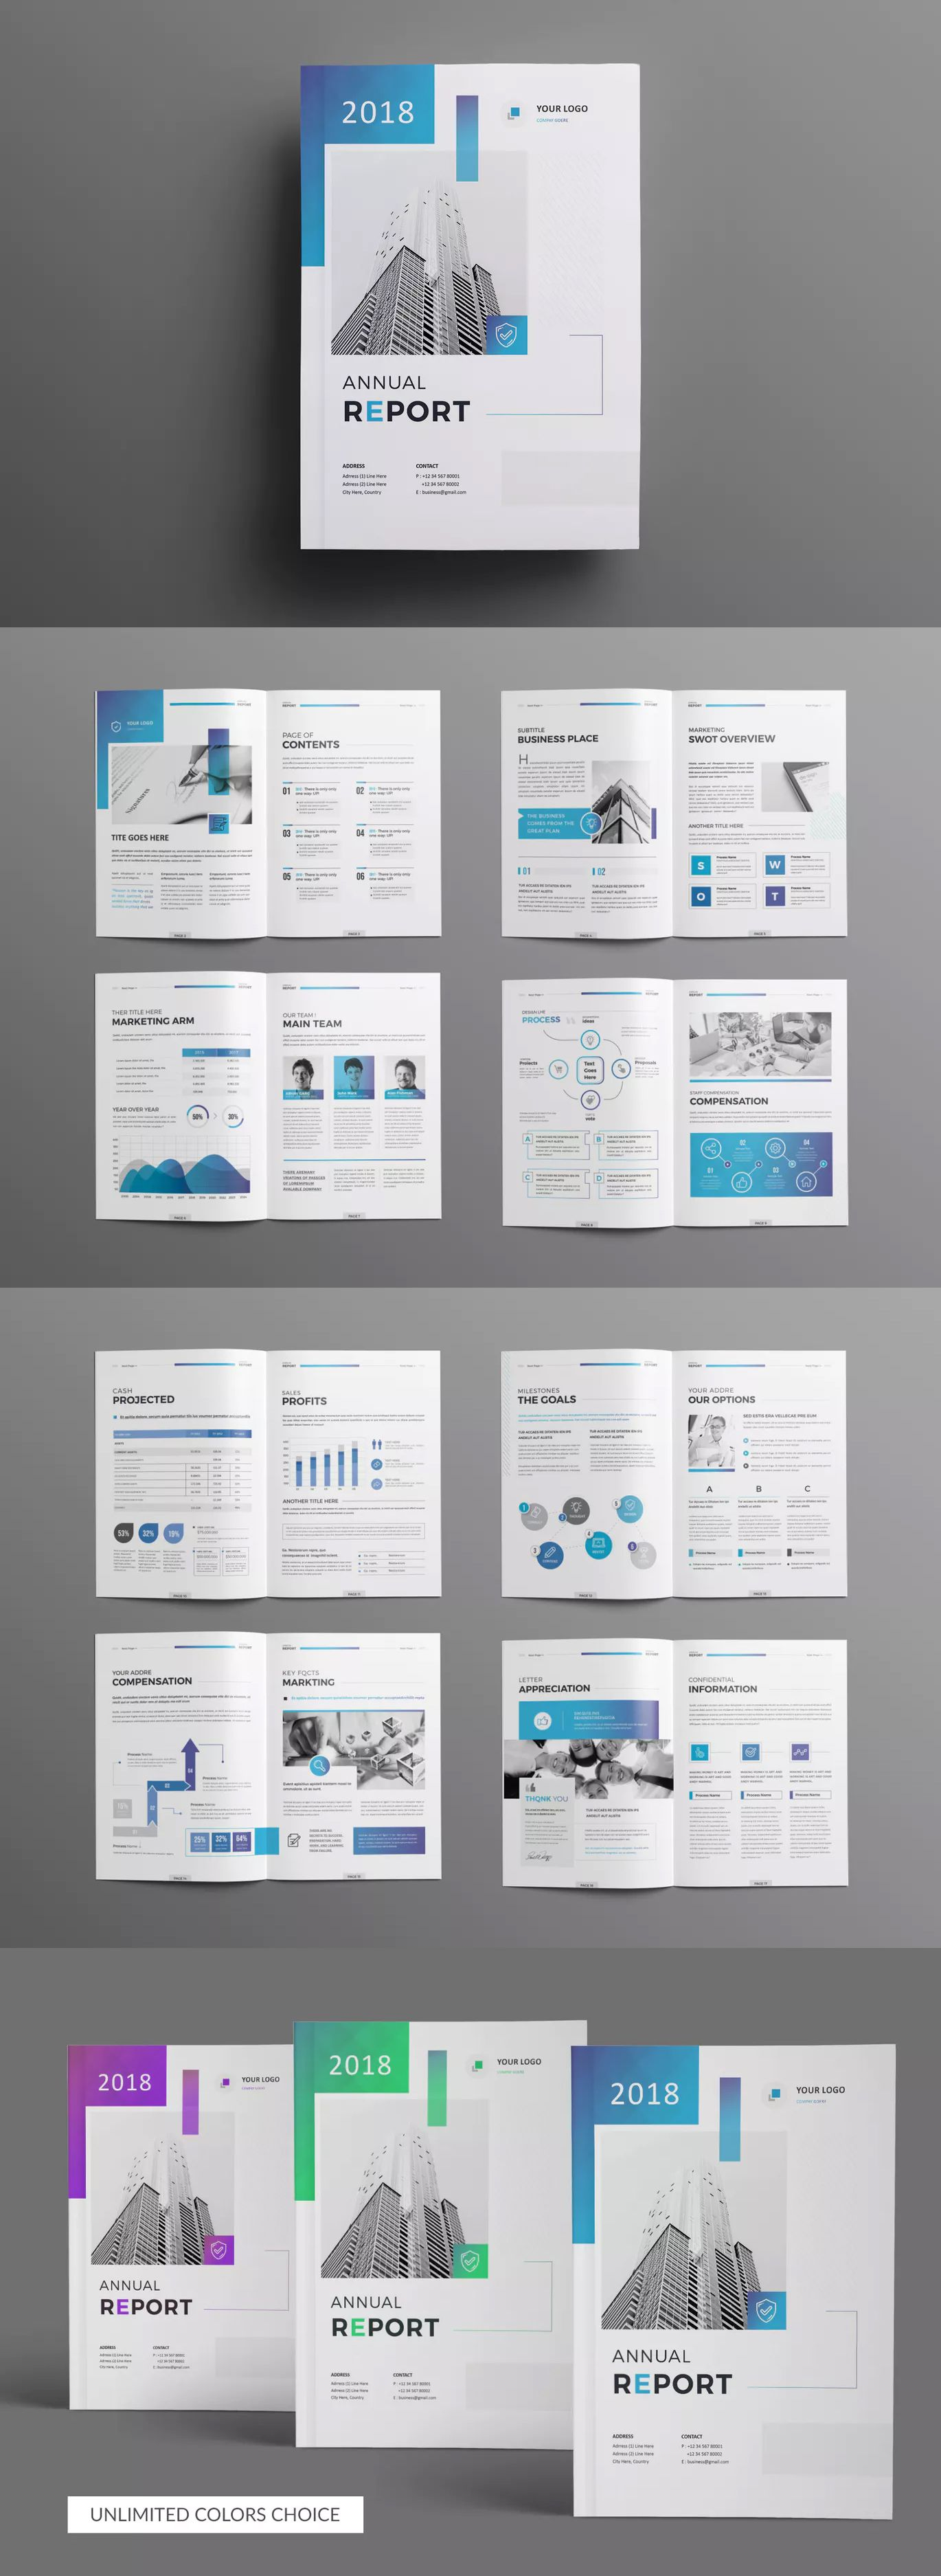 The Annual Report Template InDesign INDD - A4 - 18 Pages #annualreports